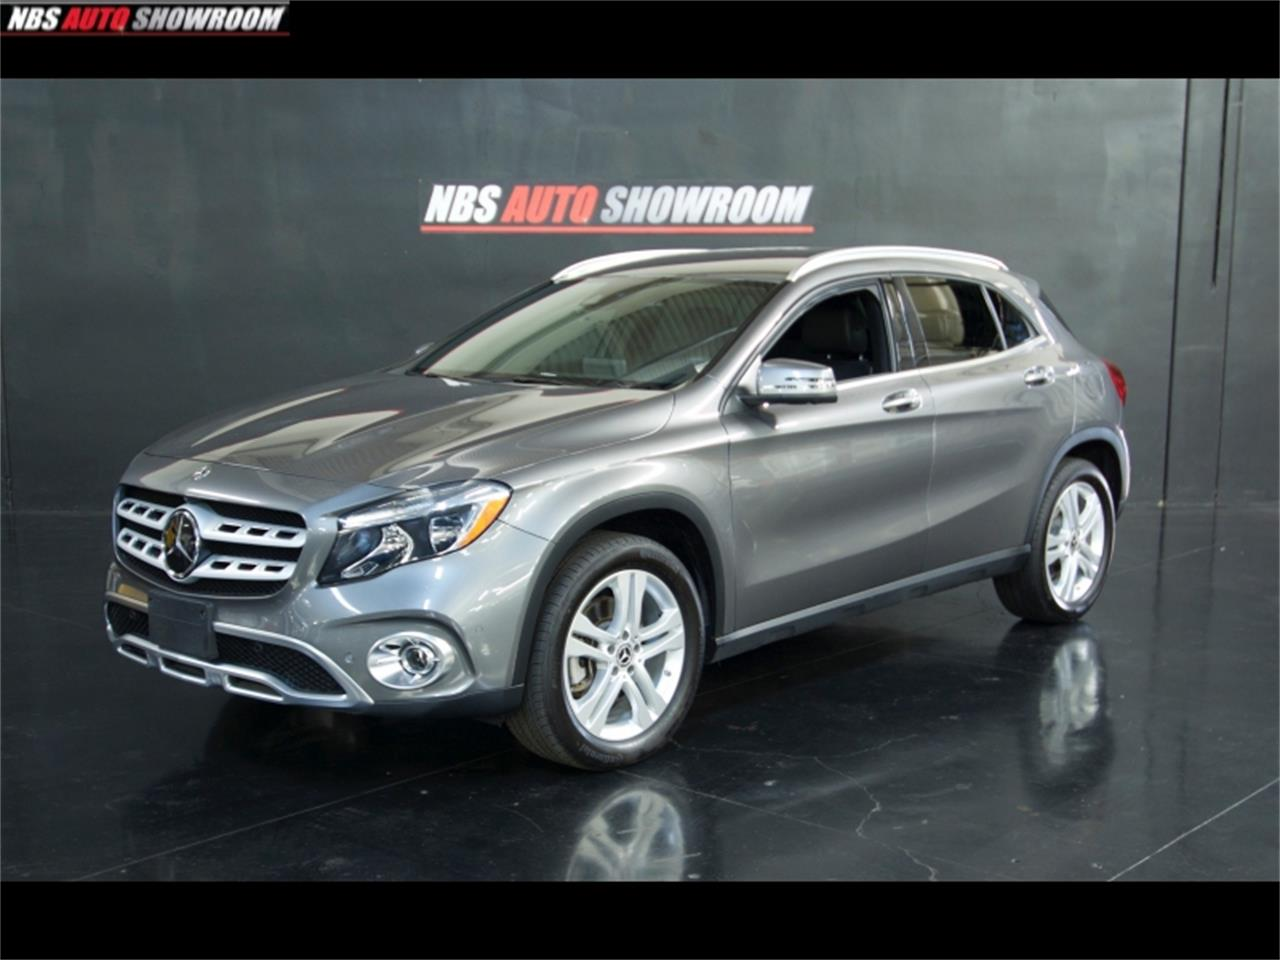 for sale 2018 mercedes-benz gl-class in milpitas, california cars - milpitas, ca at geebo